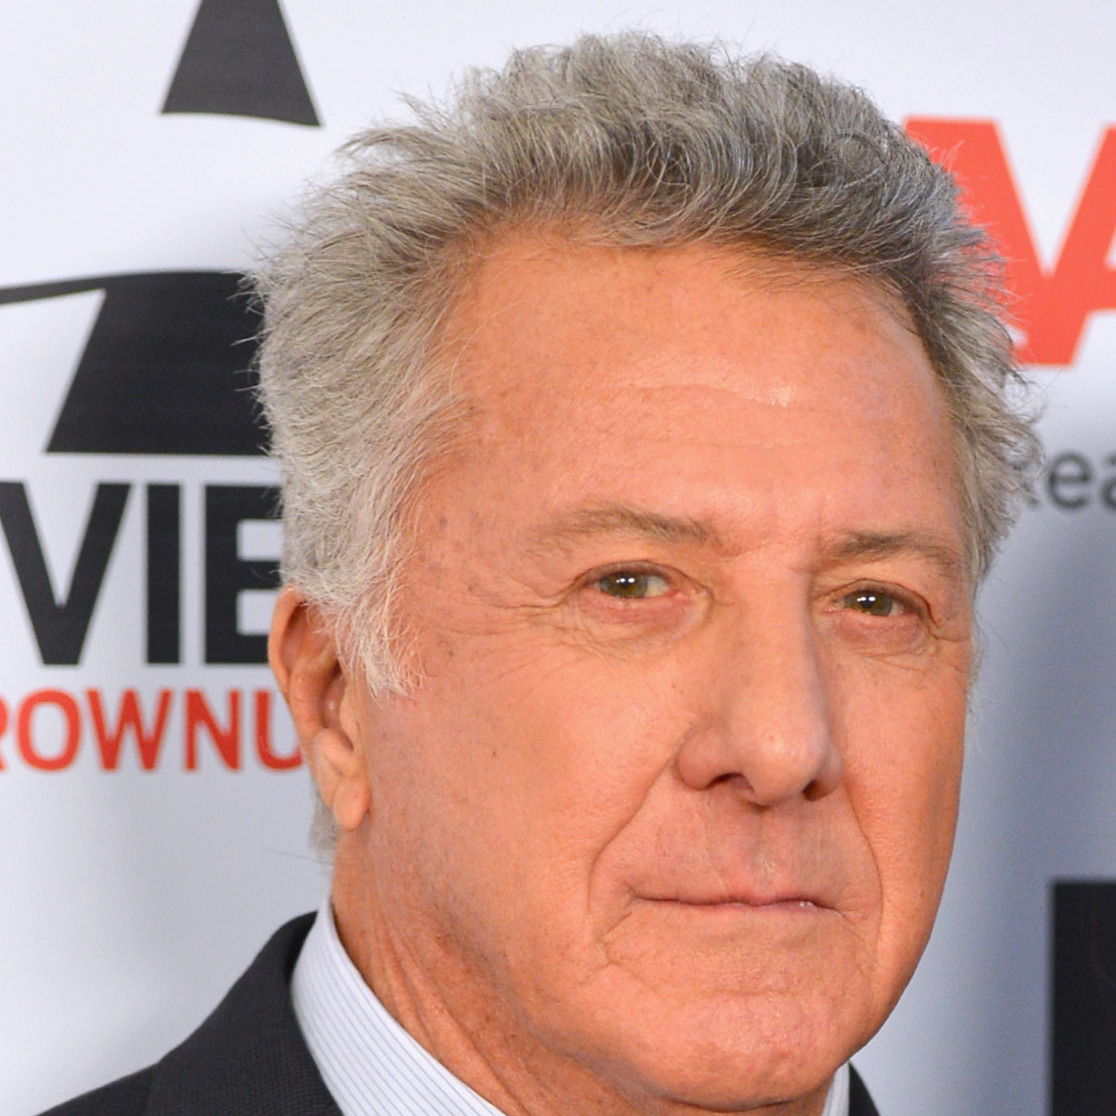 Dustin Hoffman attends the AARP's Movies for Grownups Awards with his wife, Lisa Hoffman. Hoffman's Quartet is just one of a new crop of popular films that target an over-50 audience.